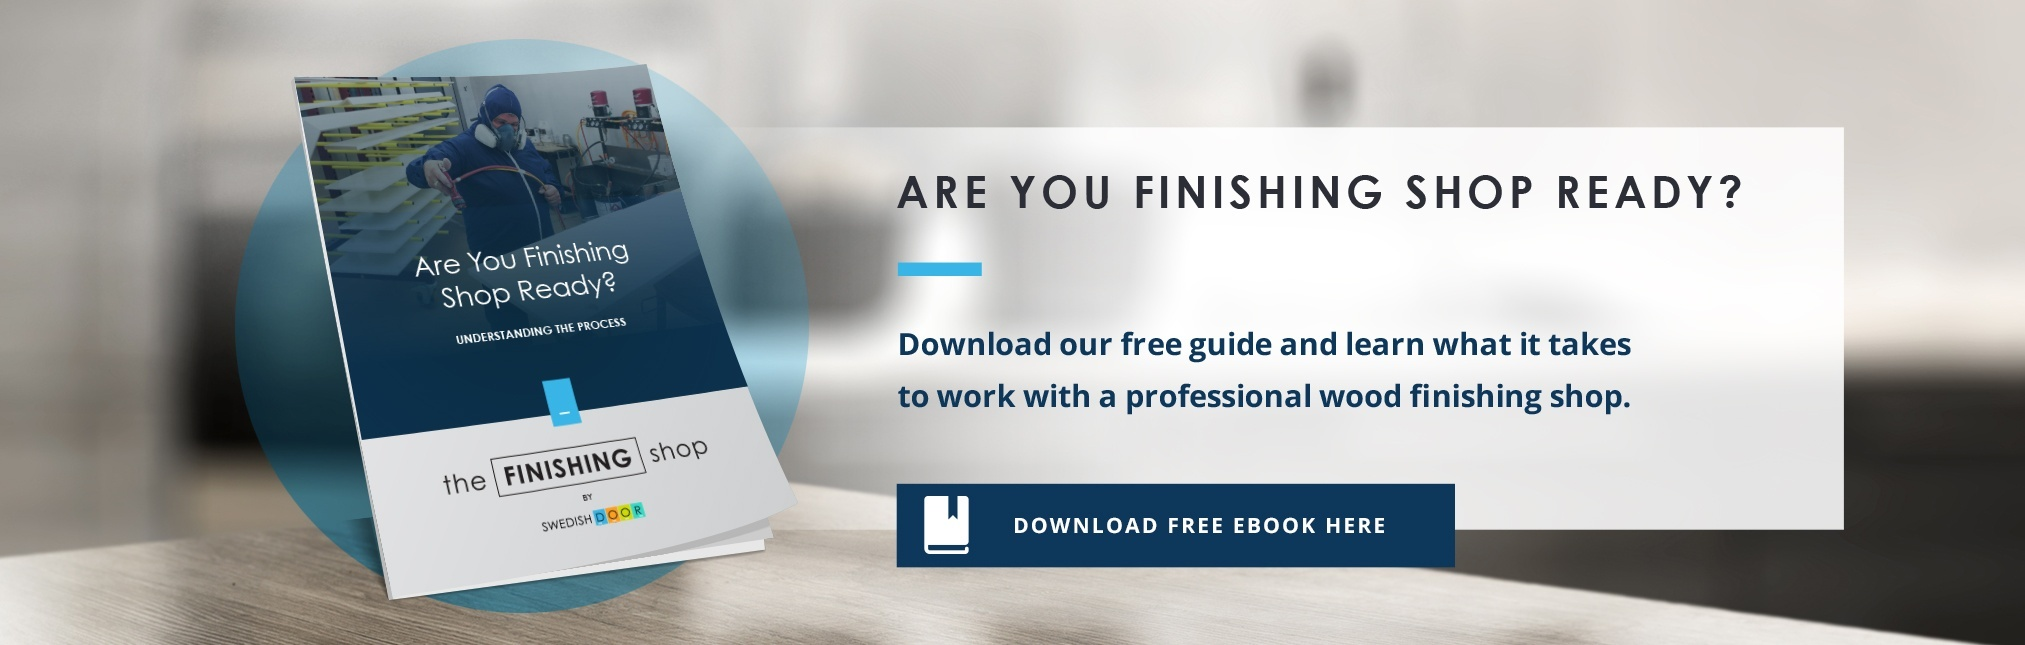 Download our free guide and learn what it takes to work with a professional wood finishing shop.